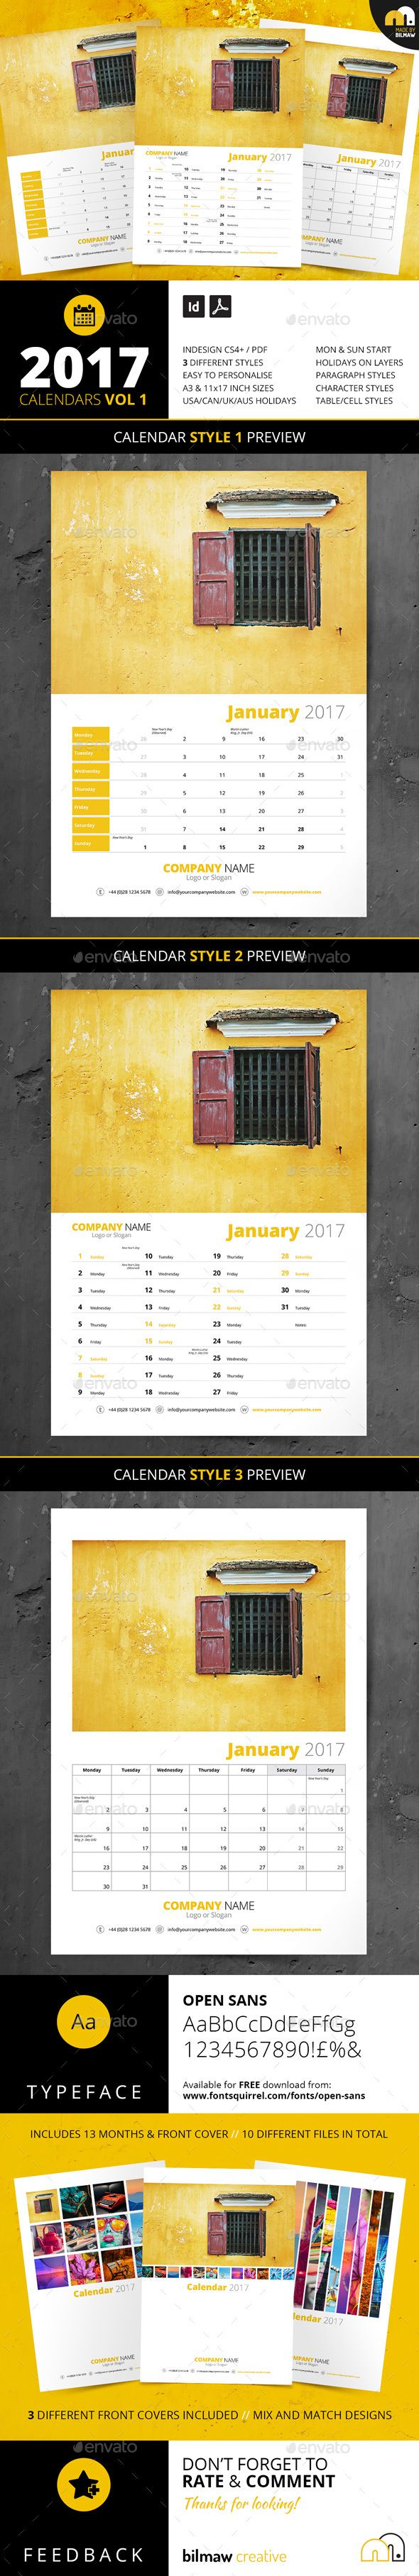 Calendars Vol 1 | Calendars Vol 2 | Customizable Template | Branding | Photography promotion | 2017 CALENDARS VOL 2 | 3 Styles // A3 & 11×17 inch (Tabloid) Versions